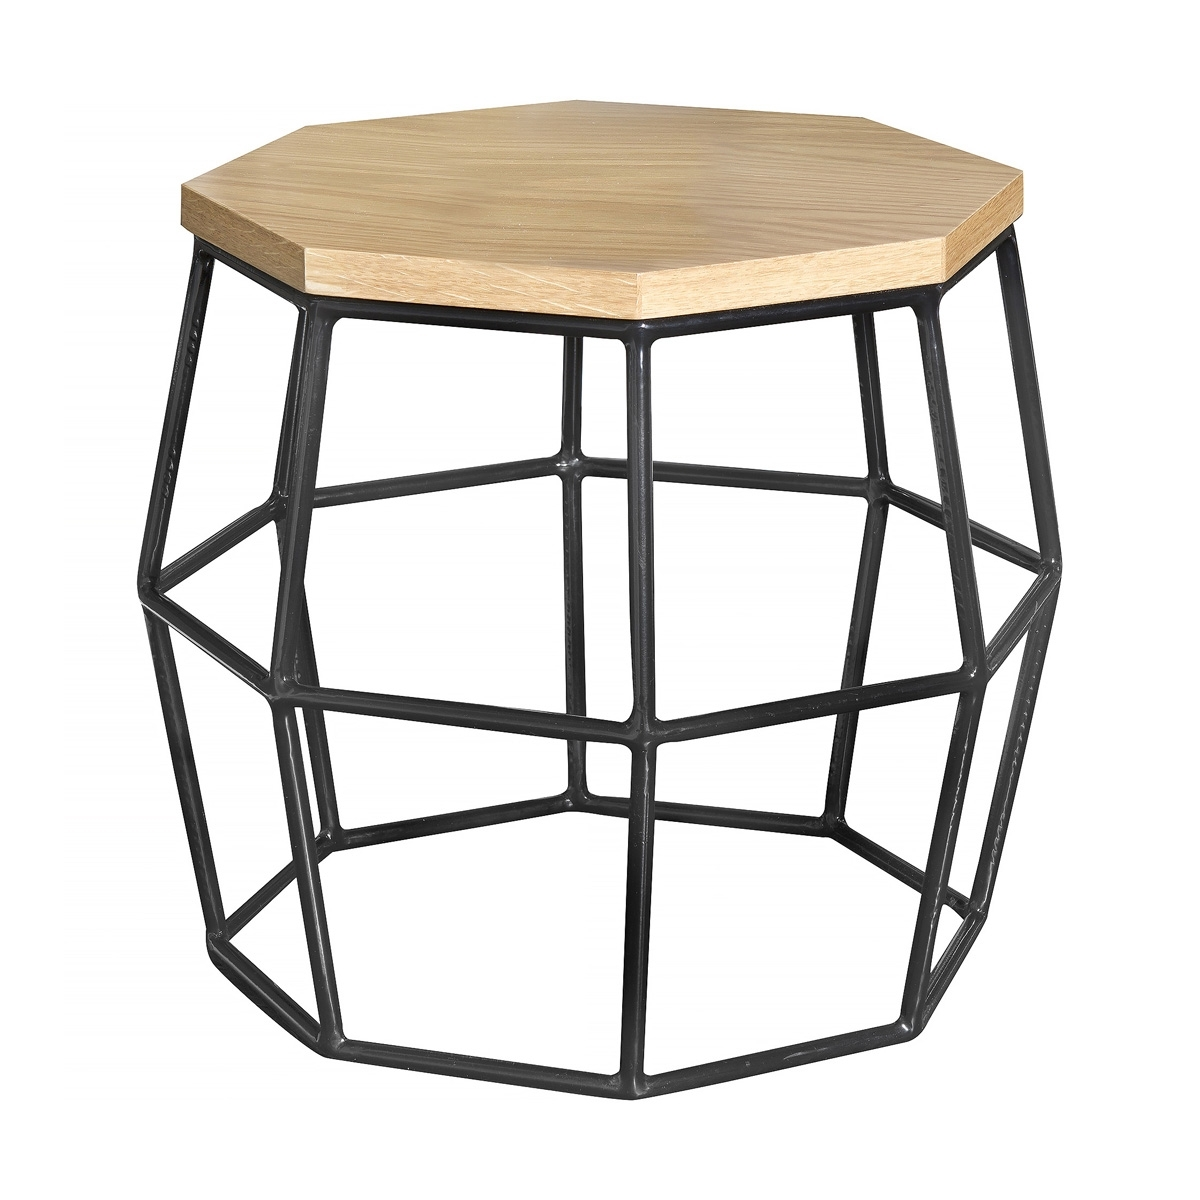 Sevenstonesinc In Recent Black Wire Coffee Tables (View 14 of 20)